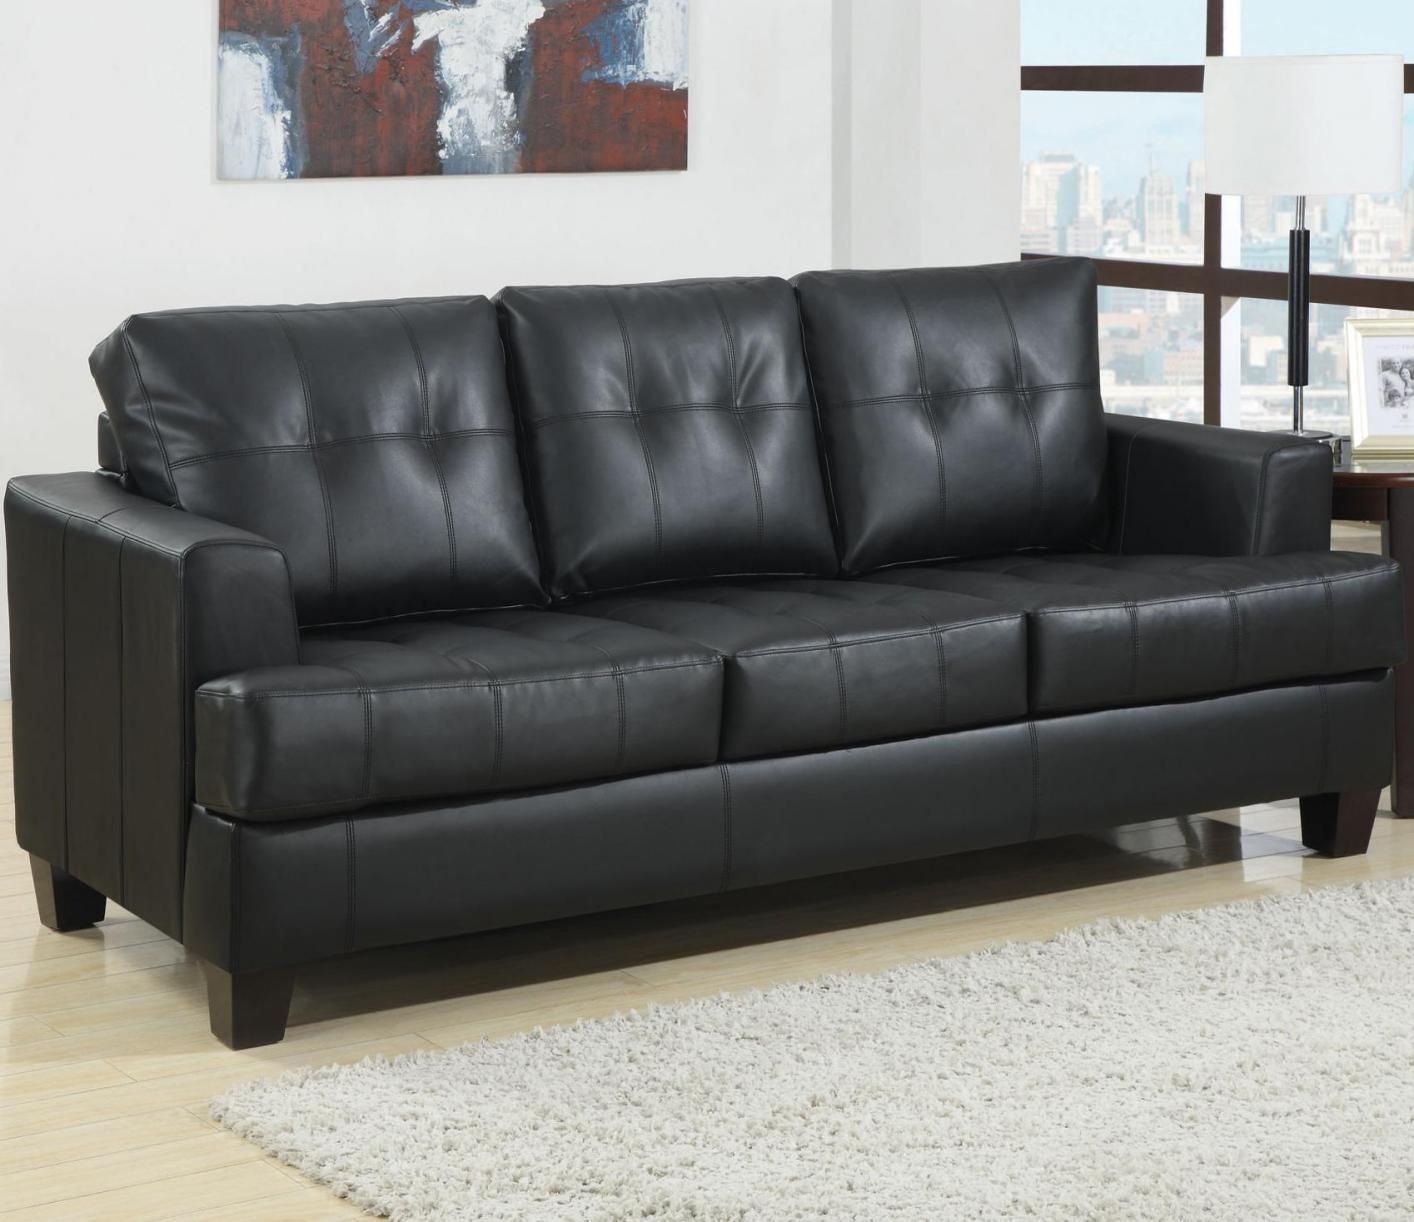 los angeles sectional sofa cama carrefour precio 20 collection of sleeper sofas ideas